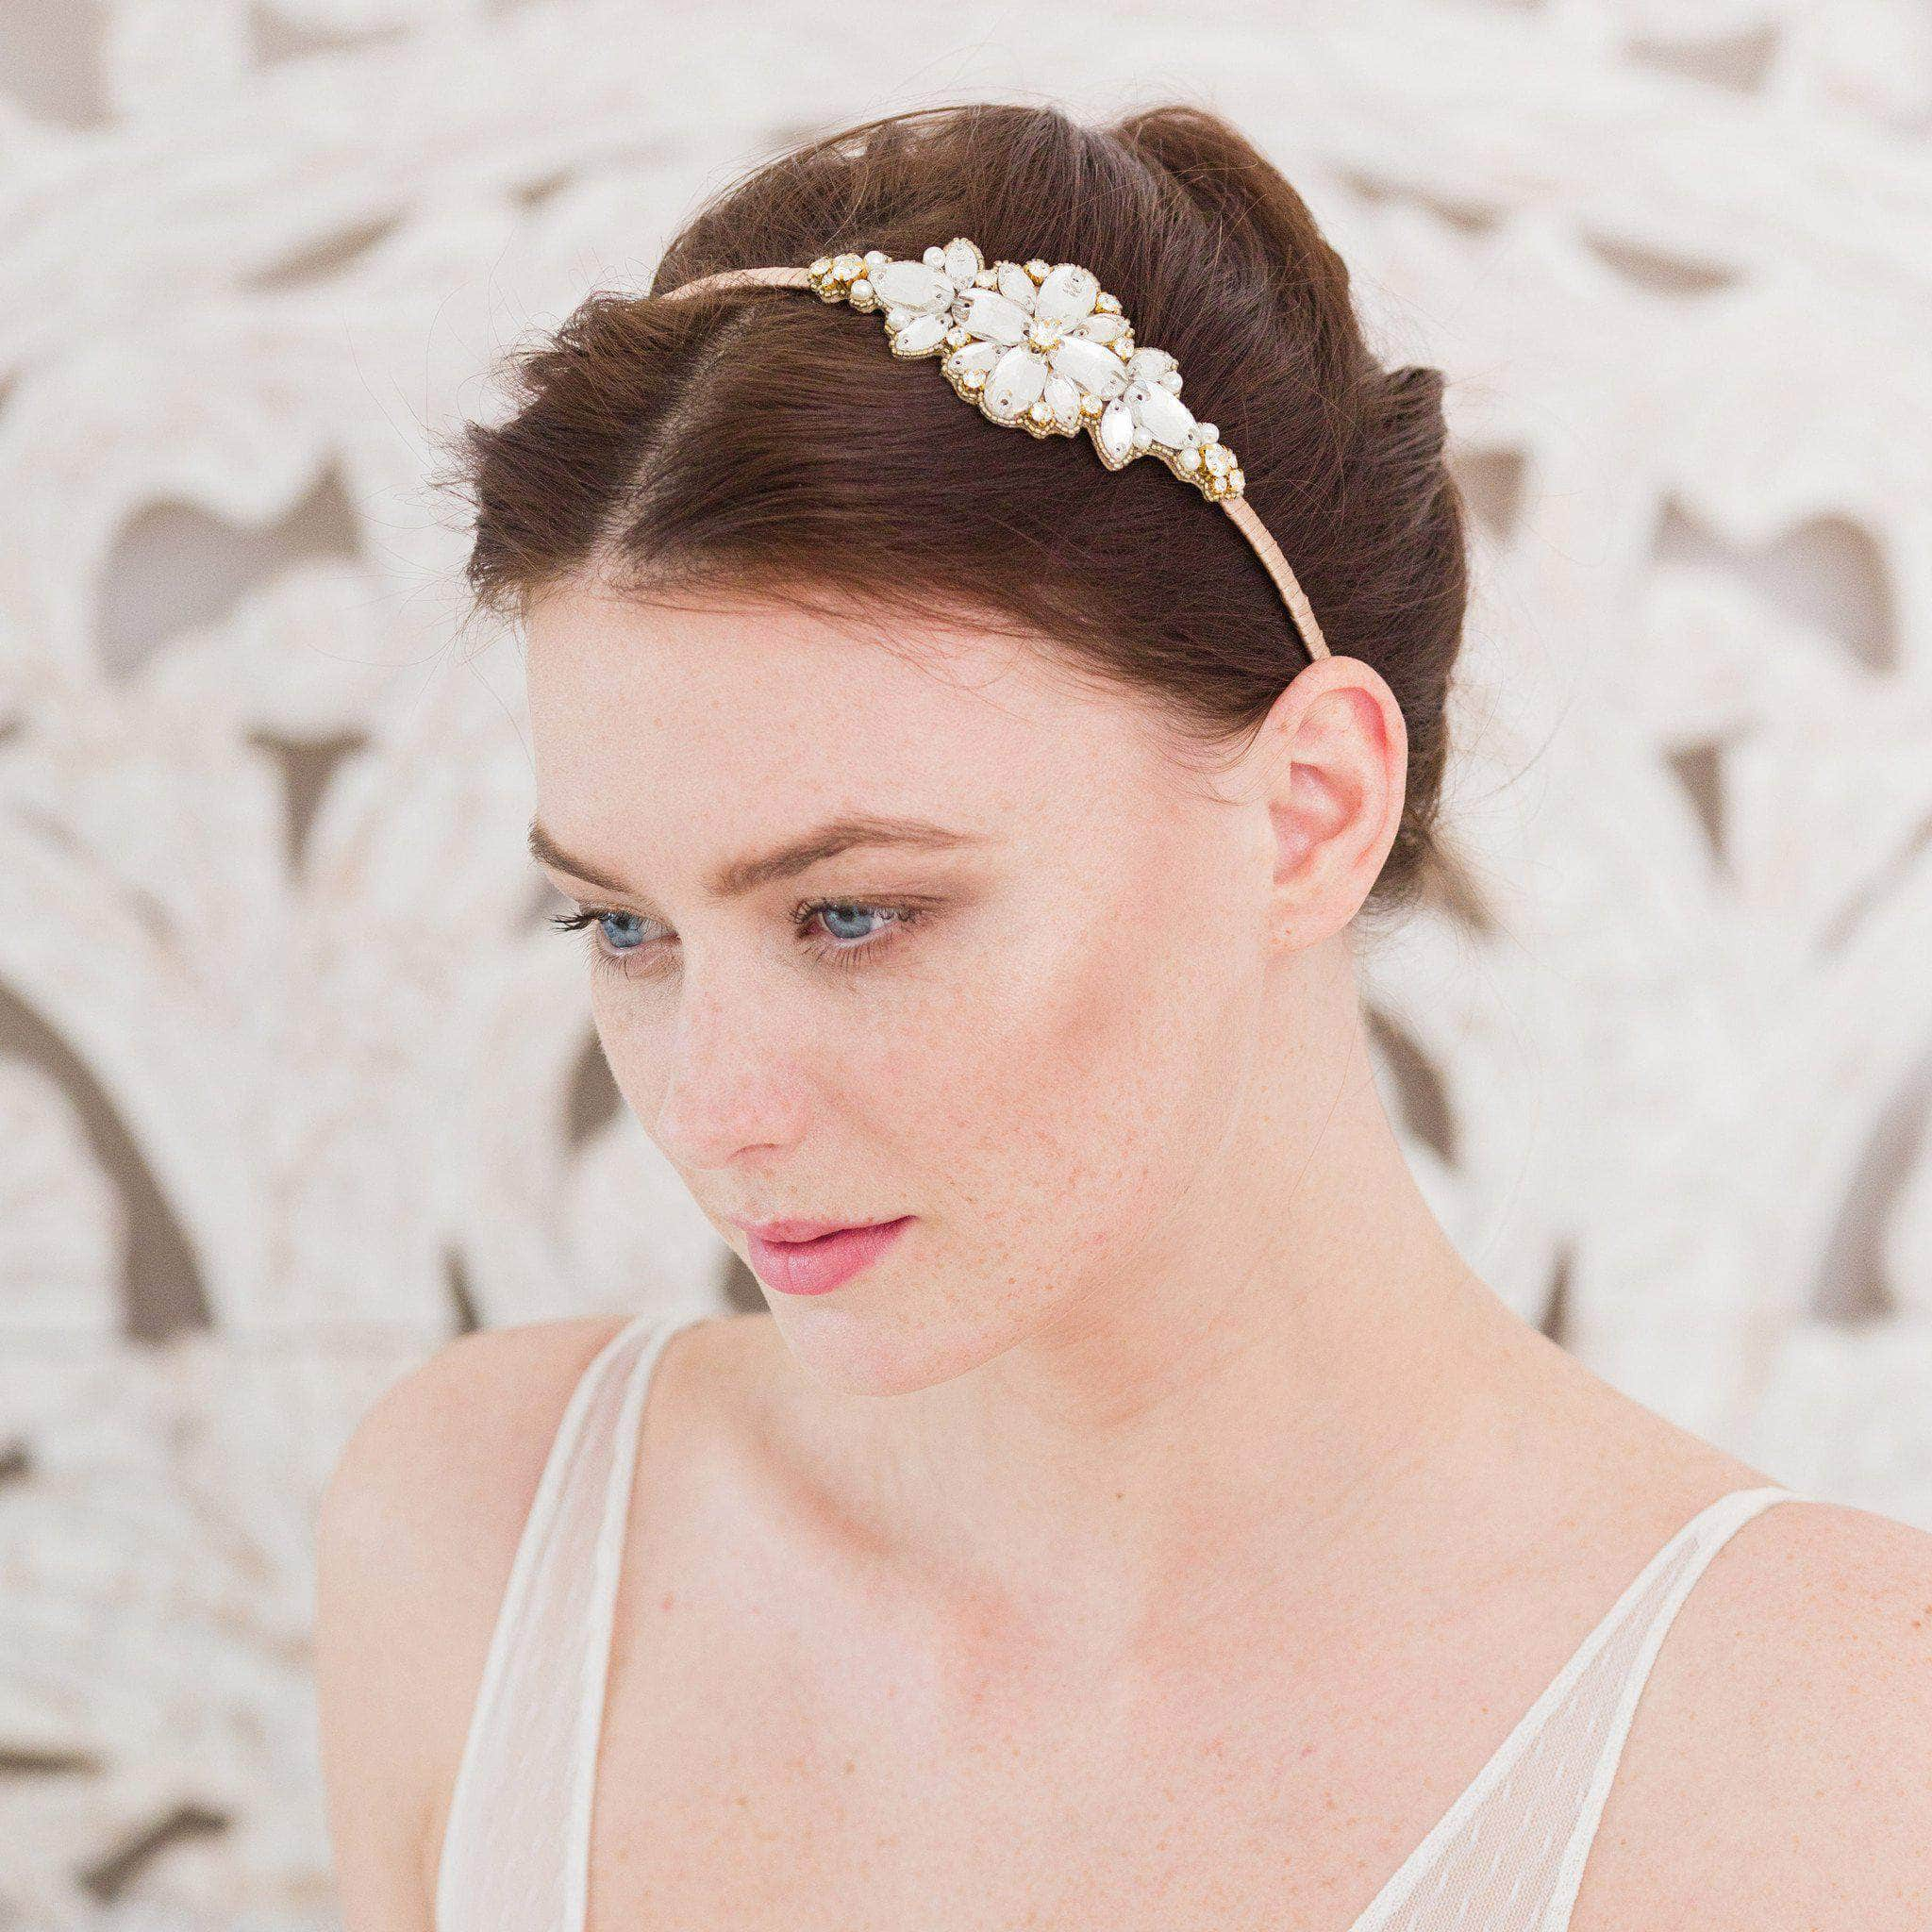 84a4d0591 Gold wedding headband with crystals and pearls 'Charia' | Britten ...